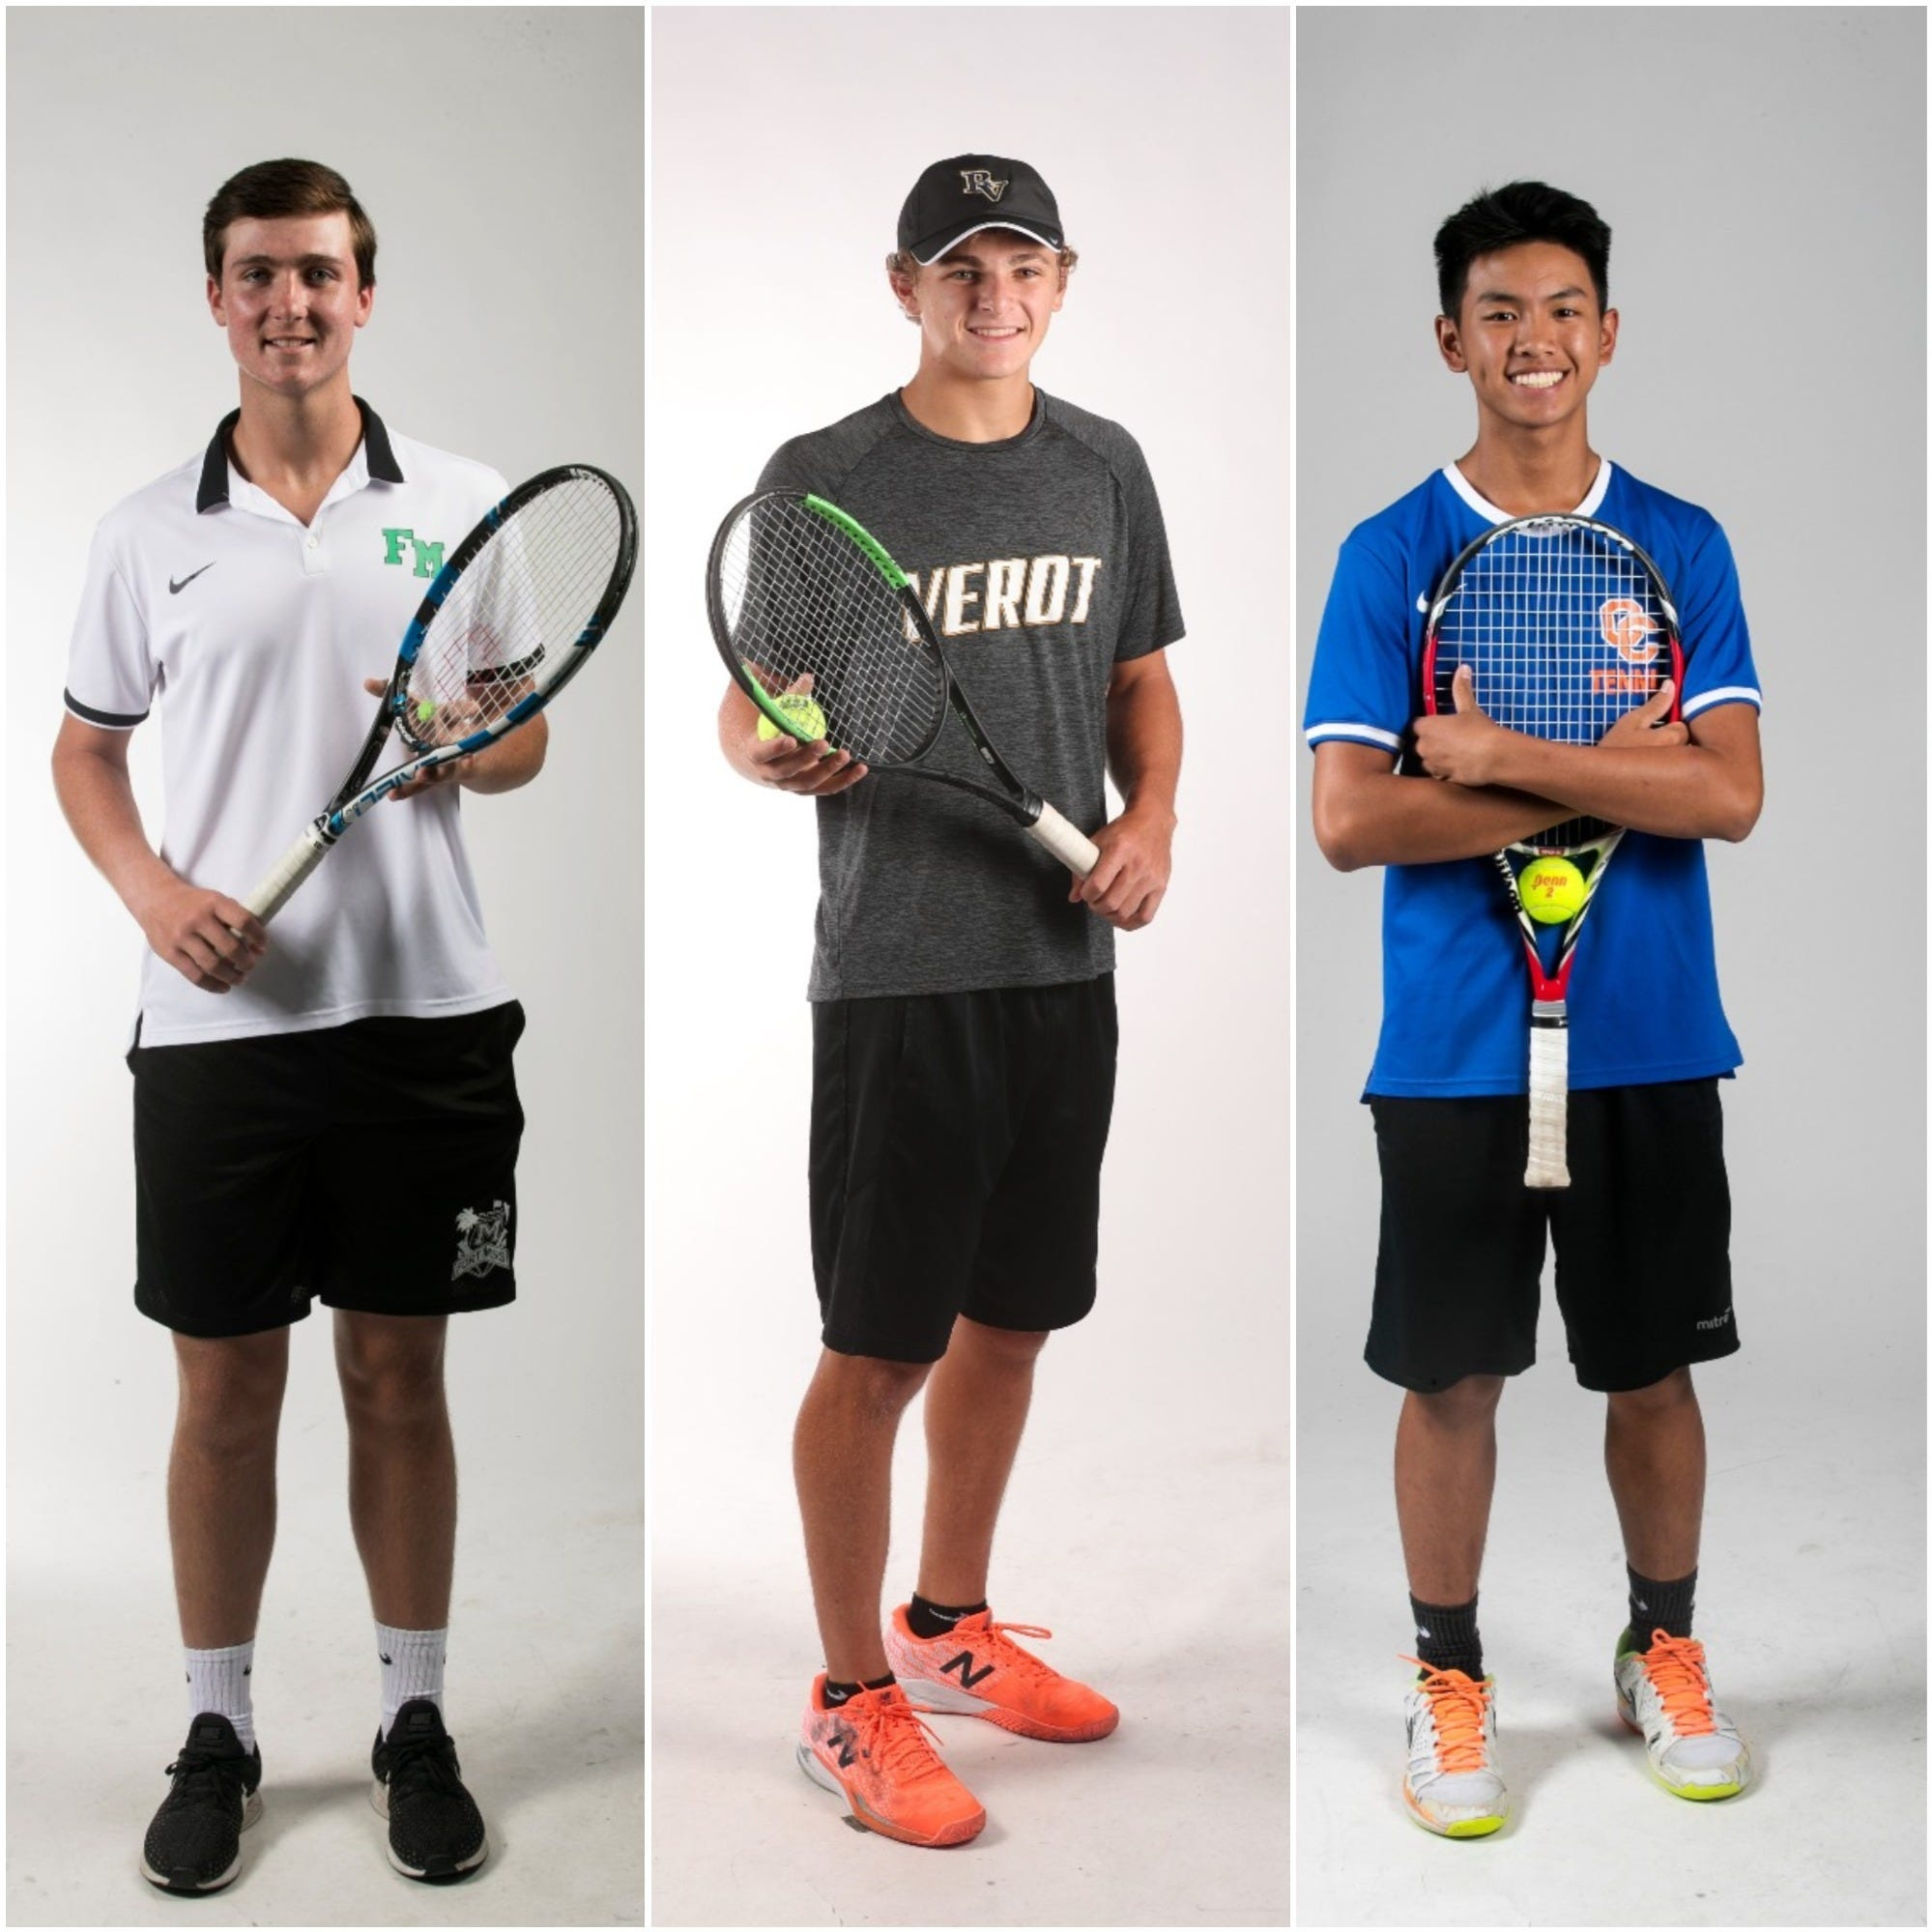 The News-Press 2019 All-Area Boys Tennis team